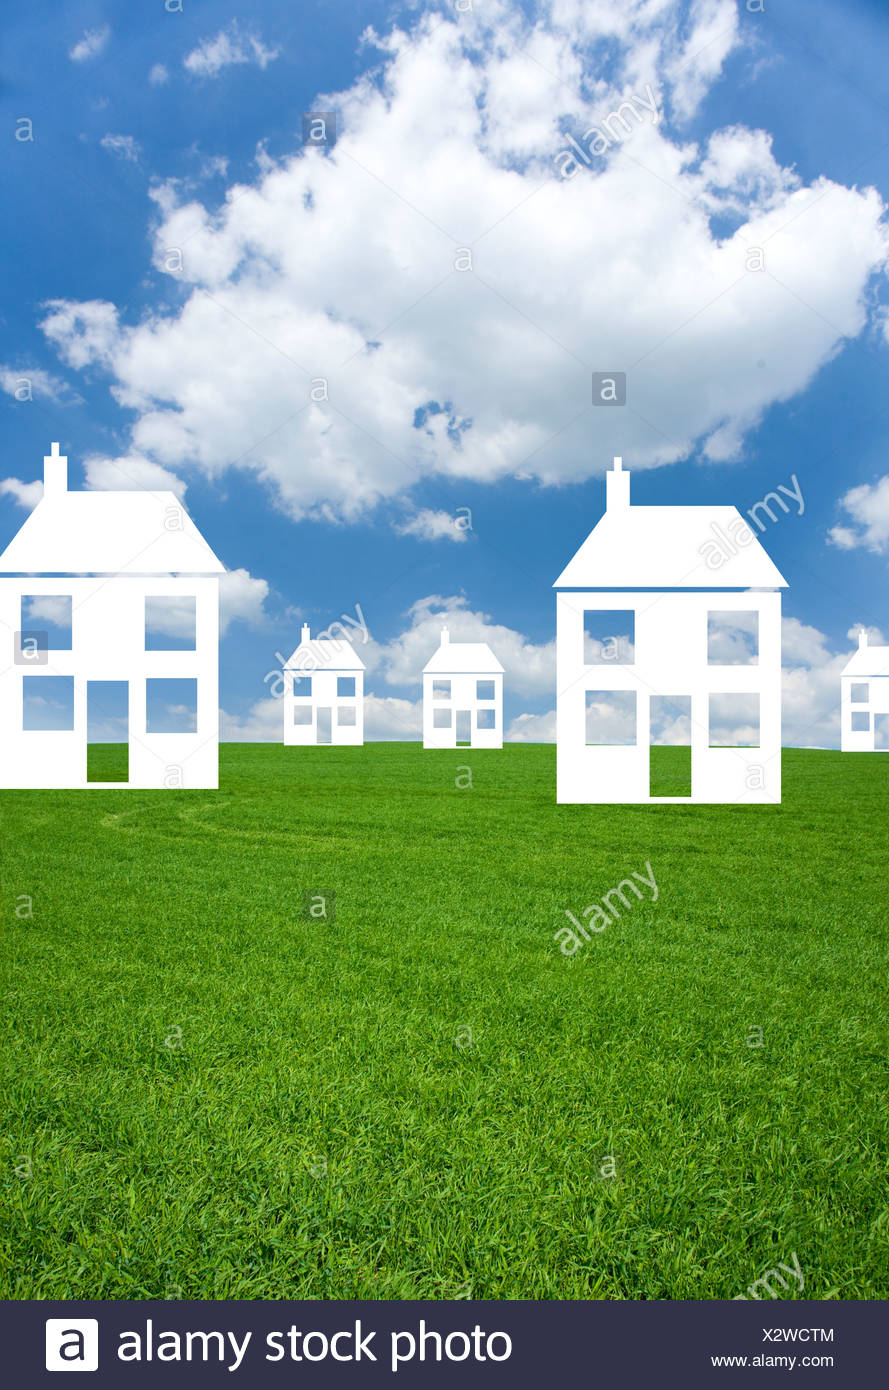 Cut out houses in grass field - Stock Image